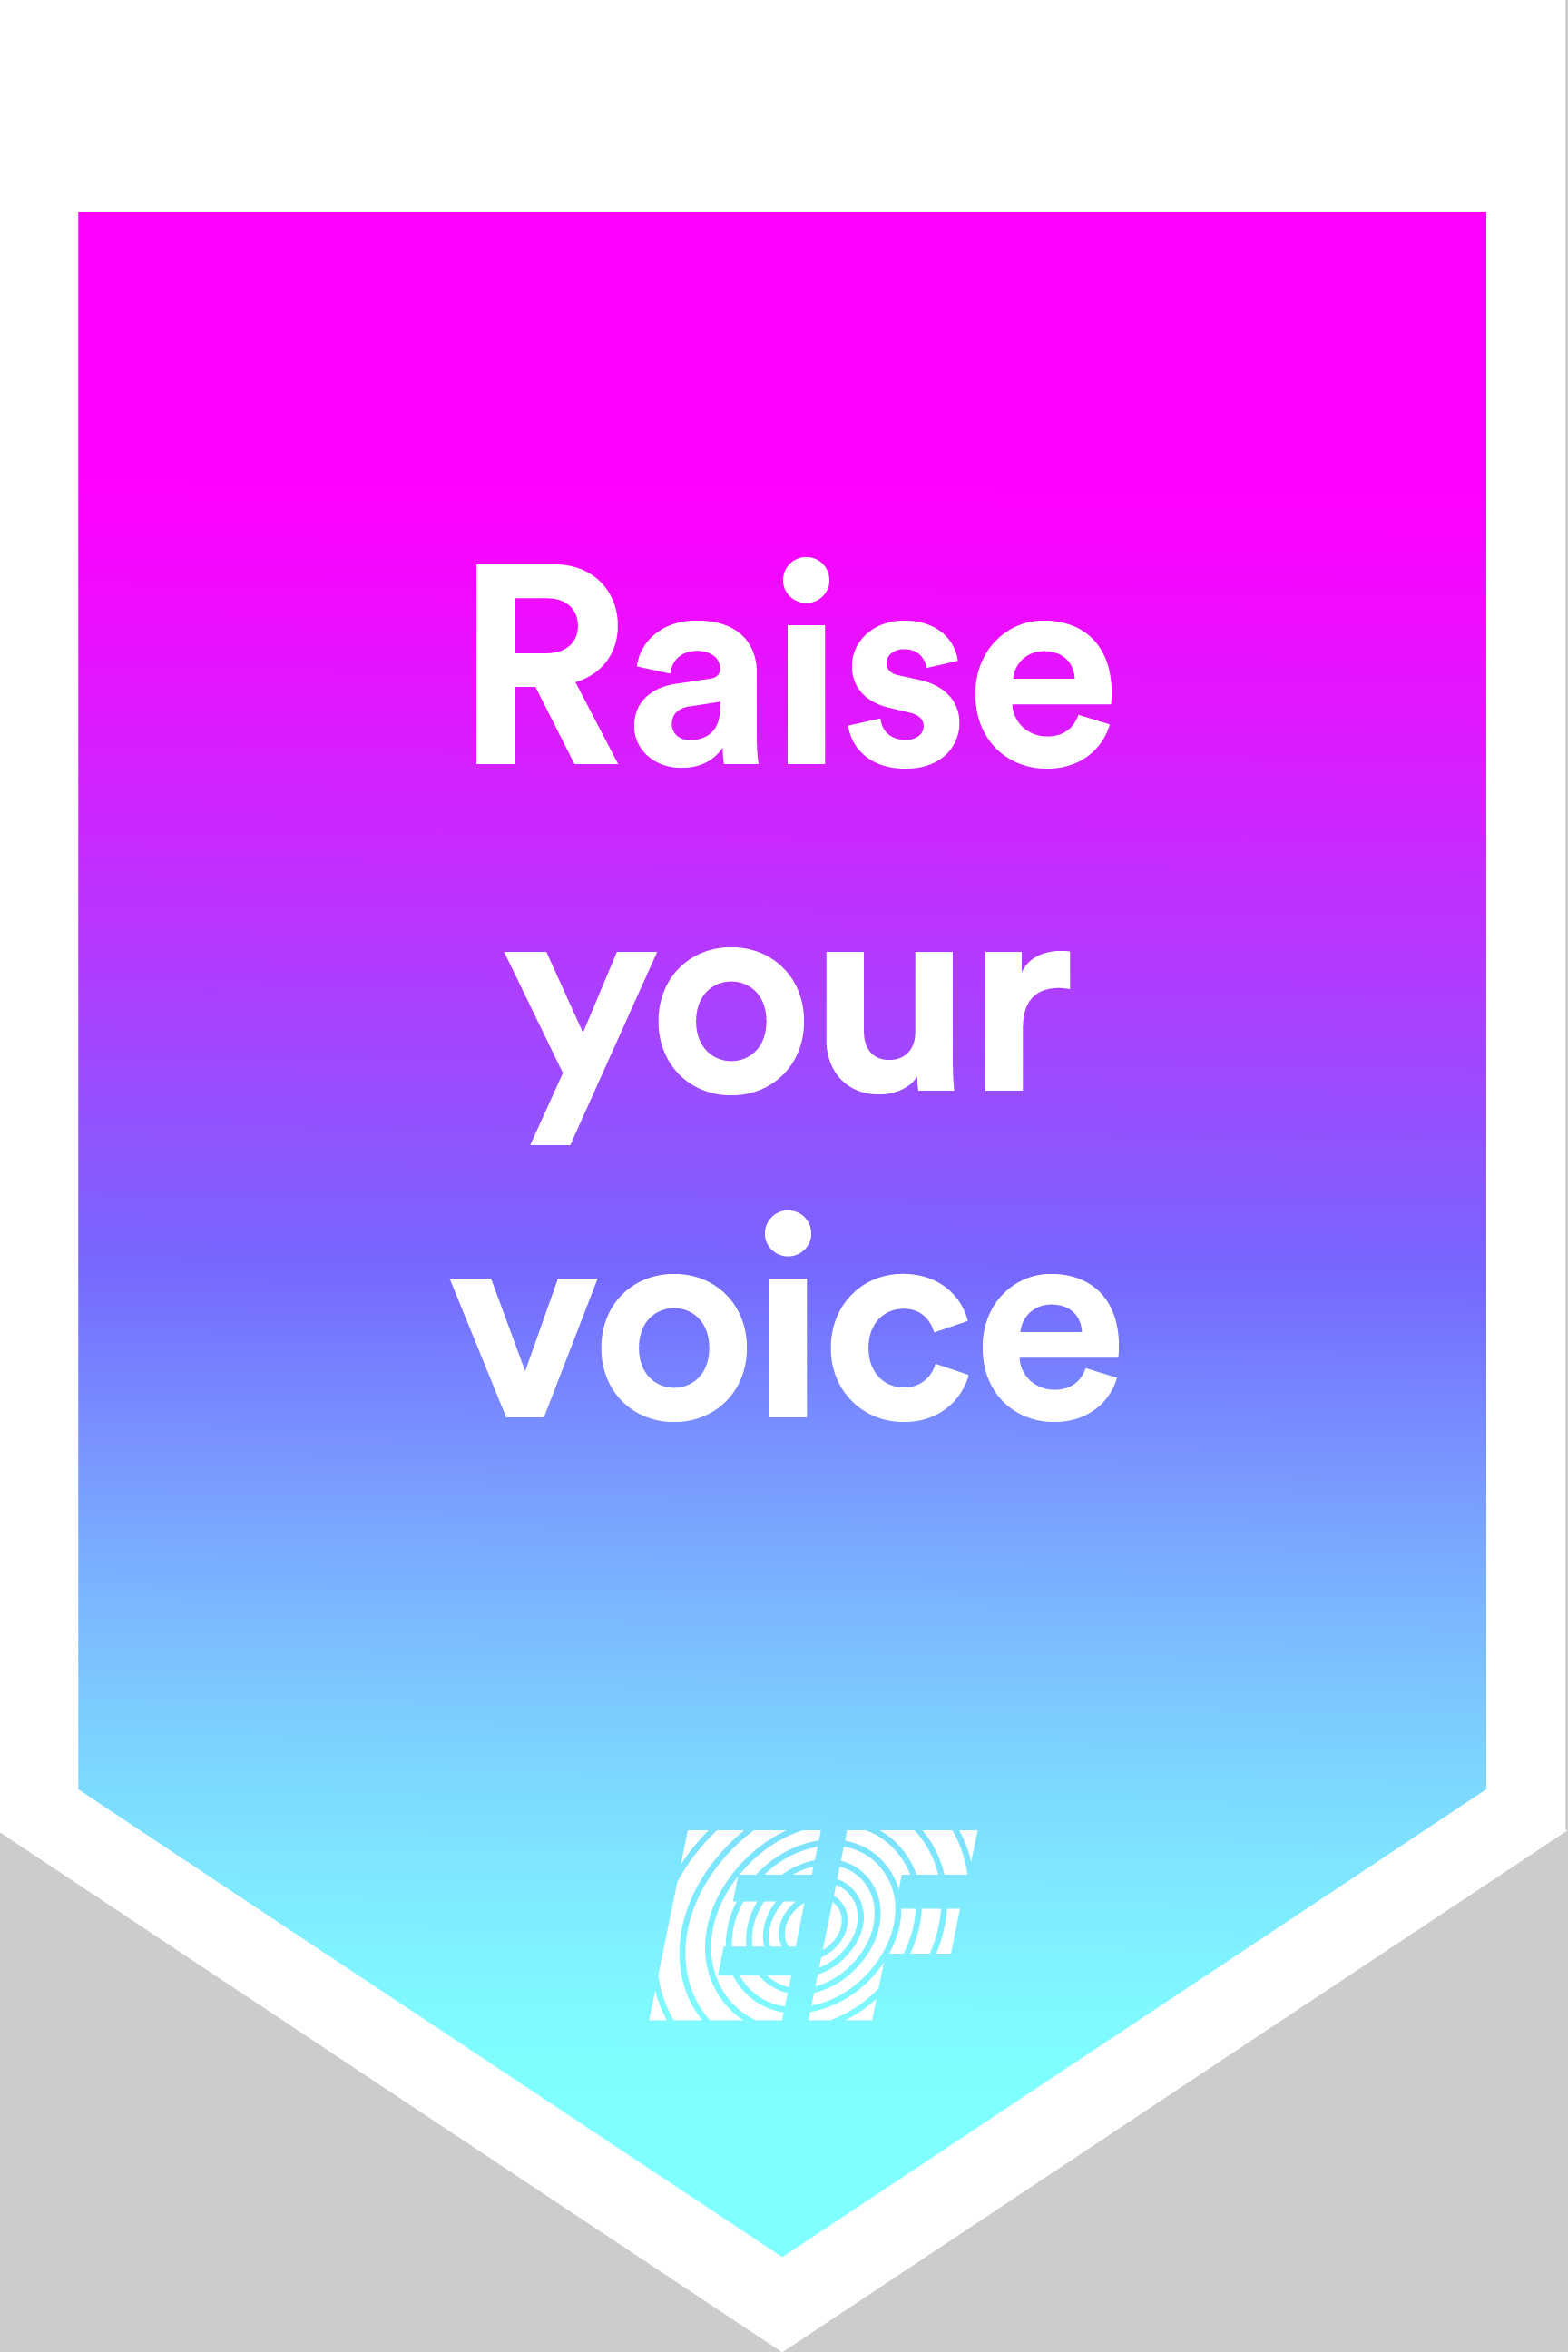 raise your voice - g-100.jpg